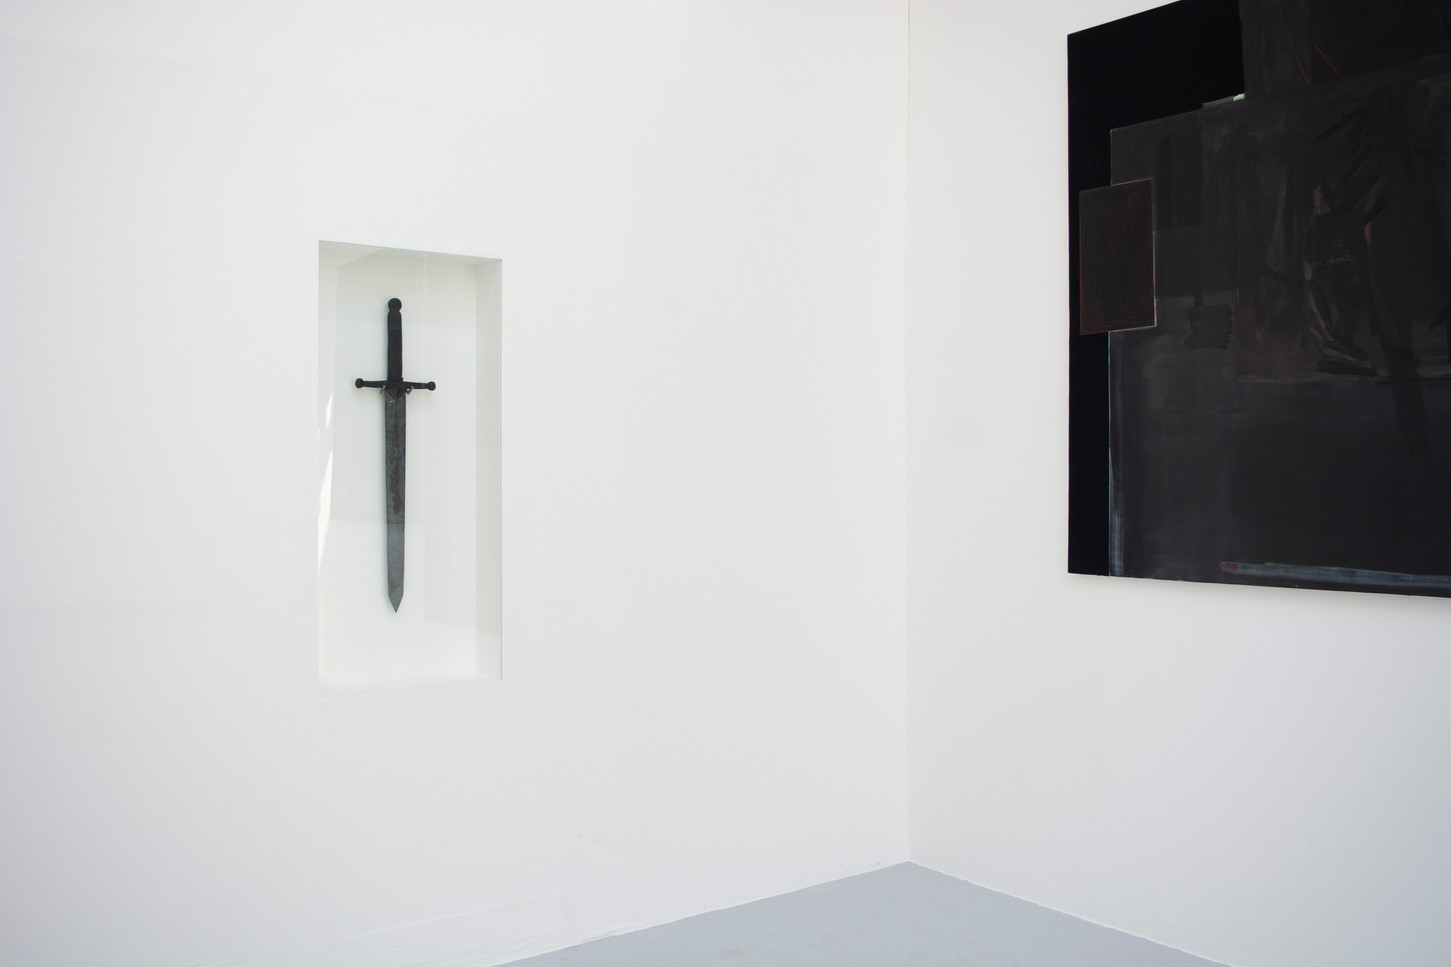 Installation shot of 'Kneeling before icons' and 'saint'